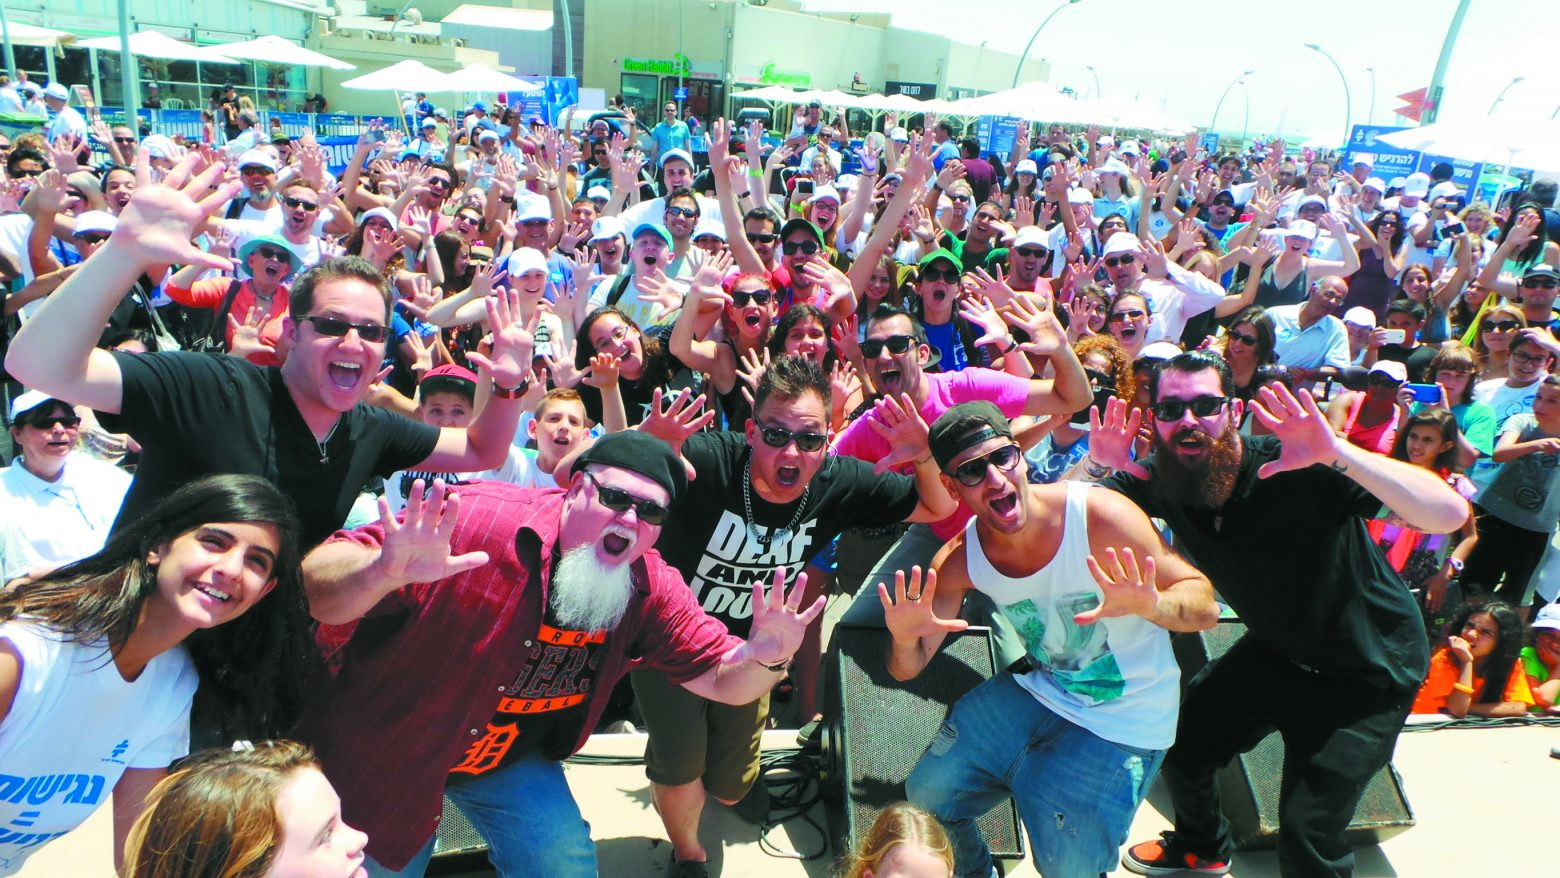 Sean Forbes, center, and Jake Bass, left, perform in Tel Aviv to a large crowd of excited concert goers